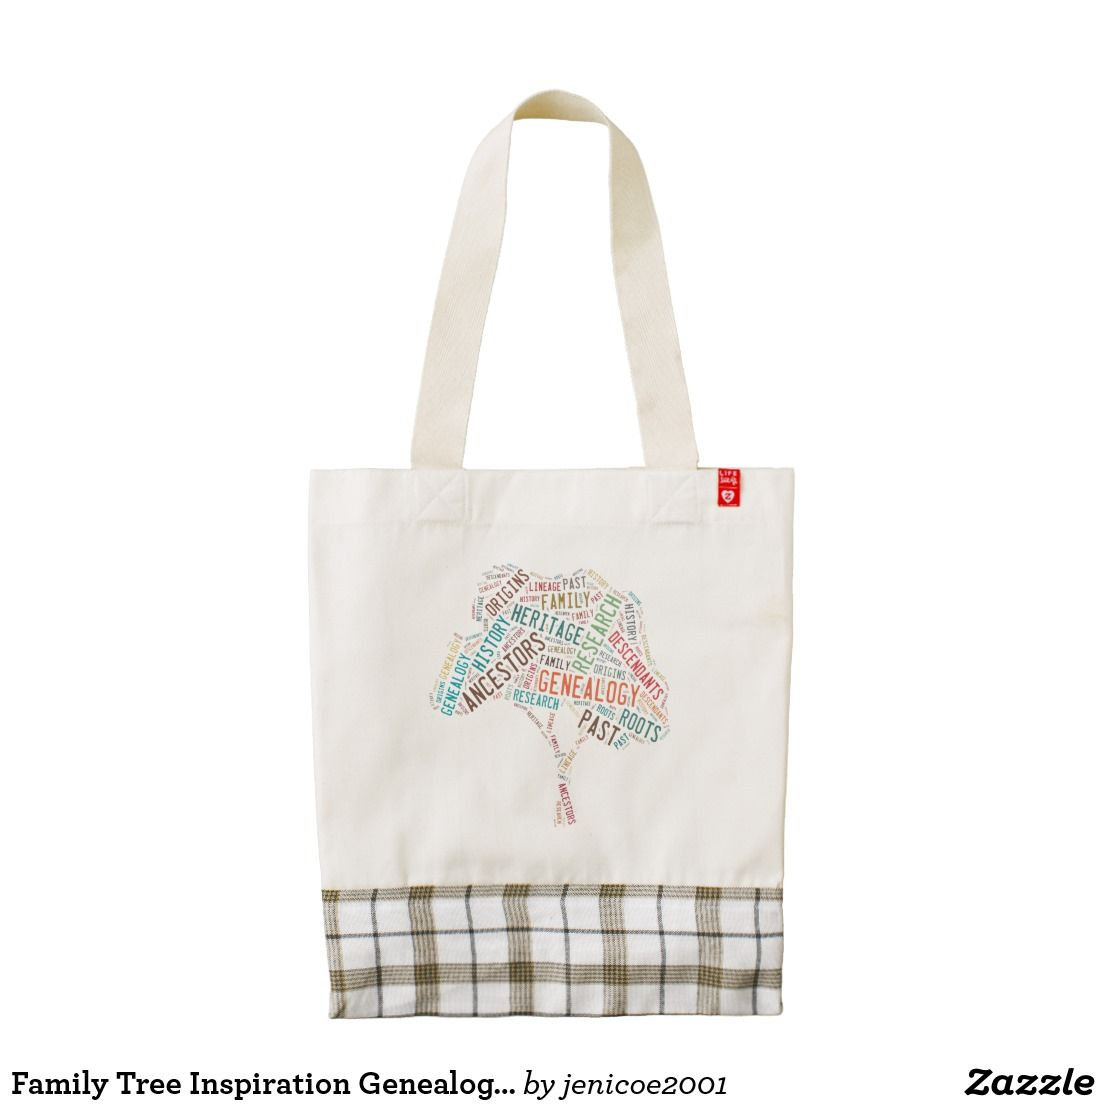 Family Tree Inspiration Genealogy Research Zazzle HEART